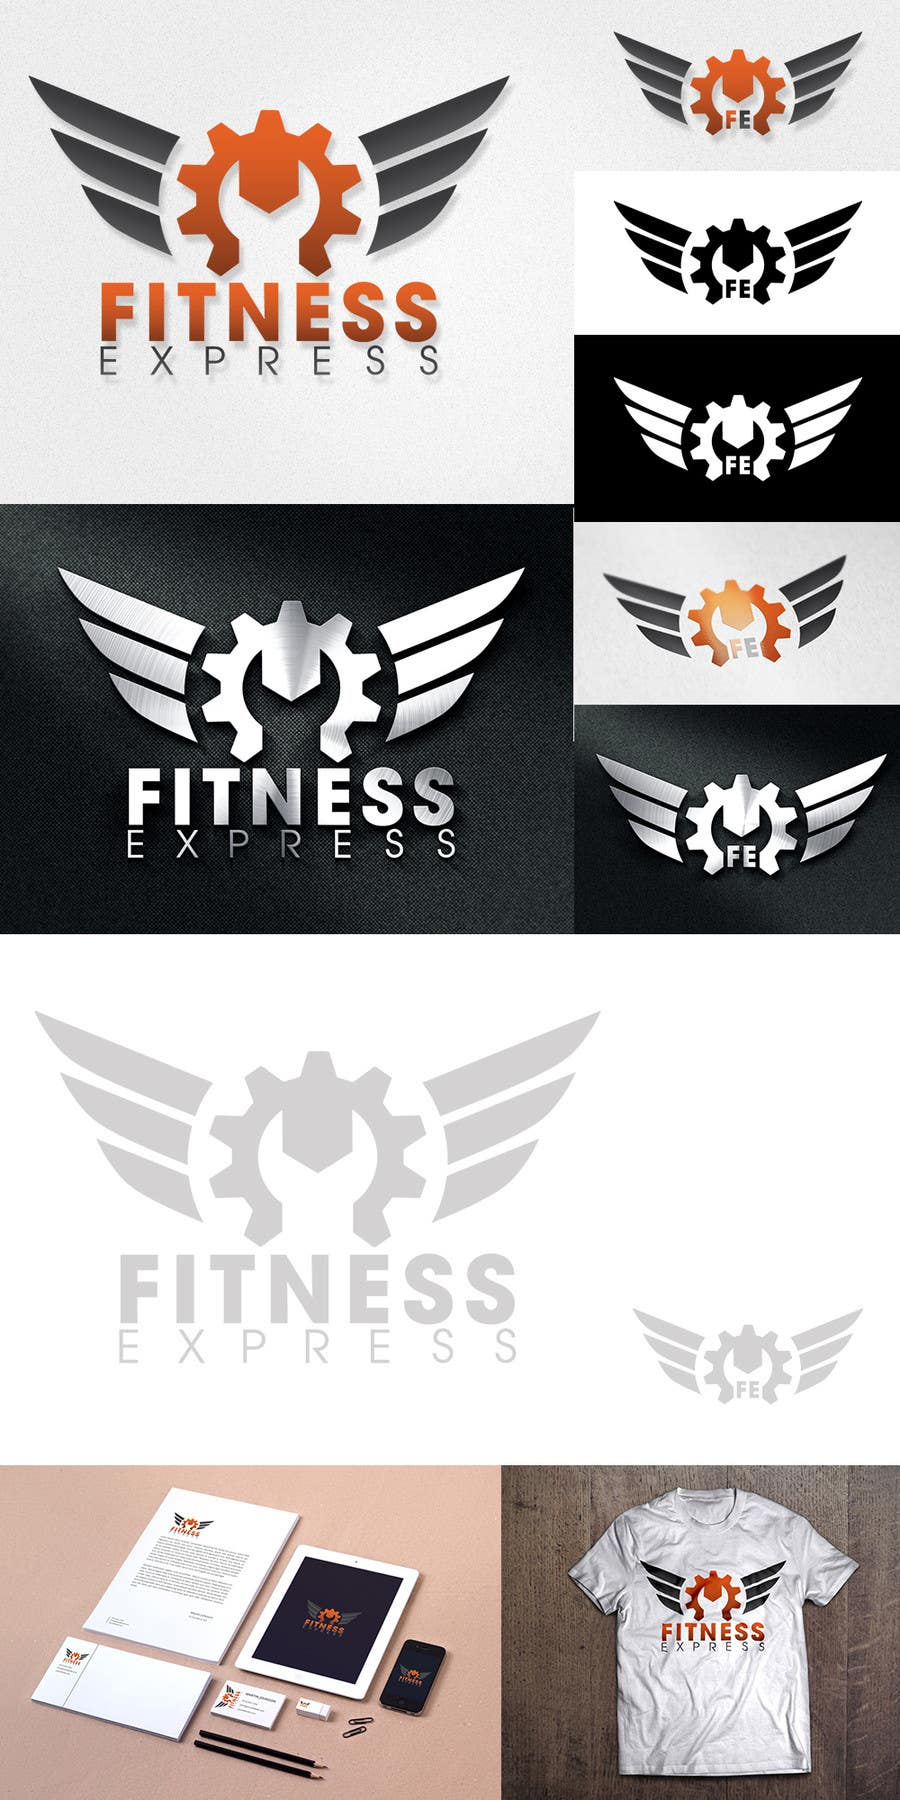 Contest Entry #                                        123                                      for                                         Design a Logo for my company called FITNESS EXPRESS, Inc